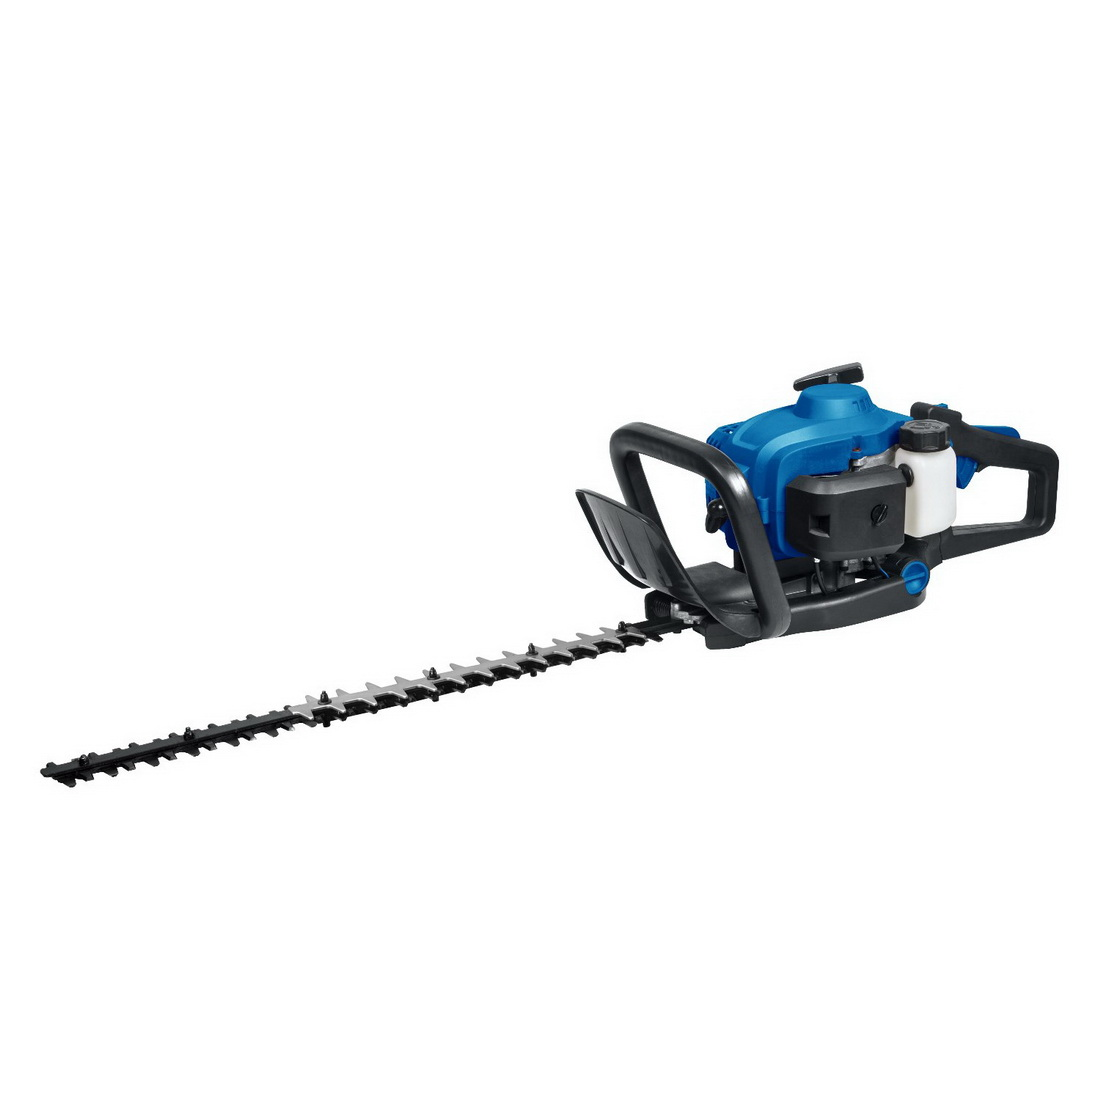 26cc 22mm x 56cm Capacity Petrol Hedge Trimmer